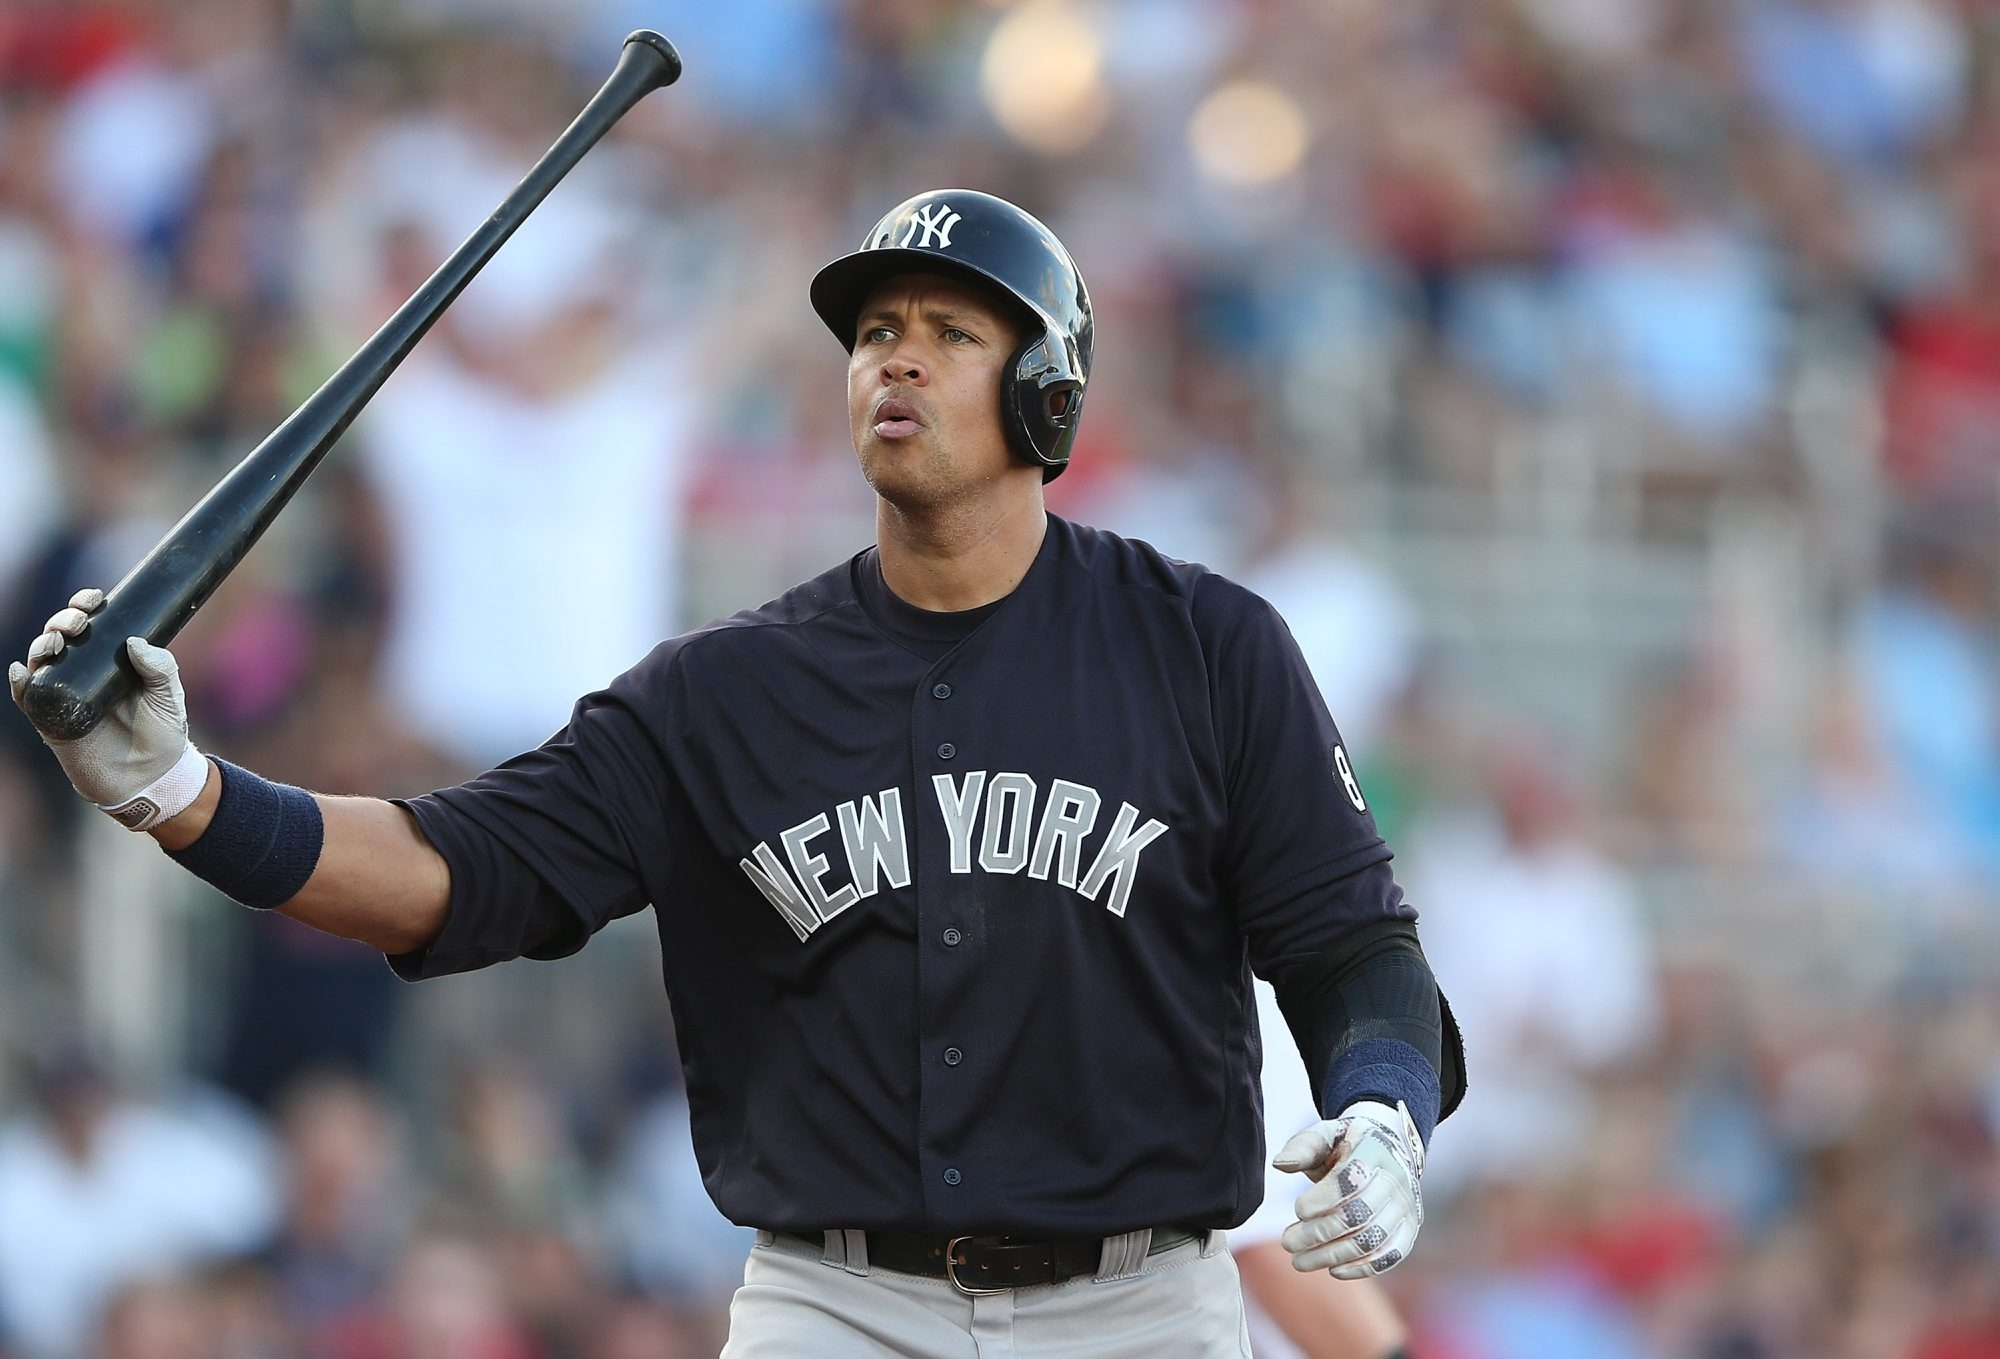 Alex Rodriguez won't be a New York Yankee much longer.